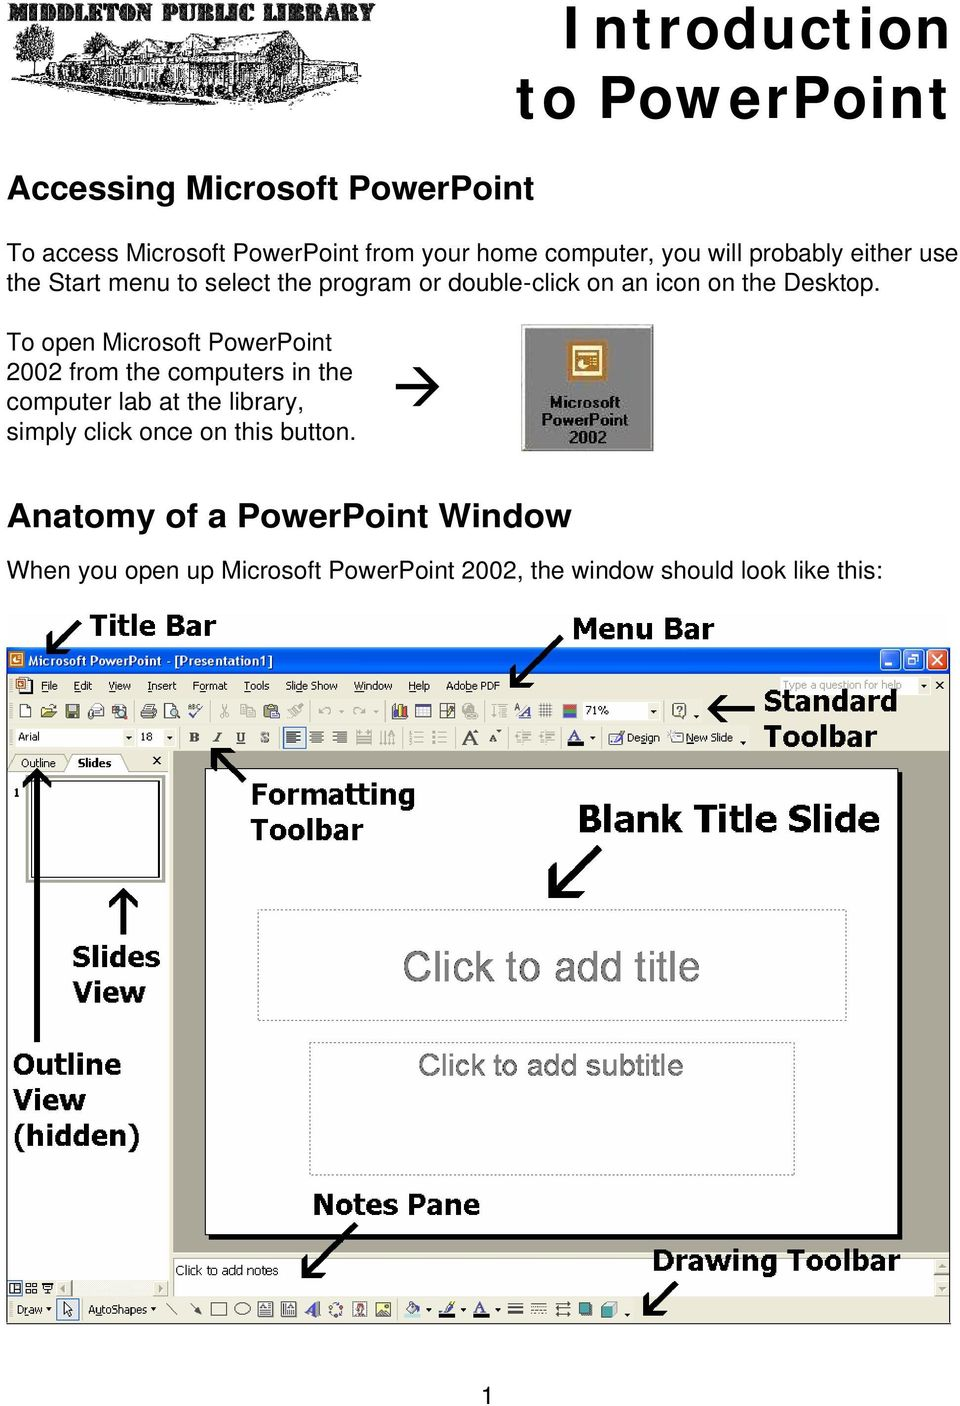 To open Microsoft PowerPoint 2002 from the computers in the computer lab at the library, simply click once on this